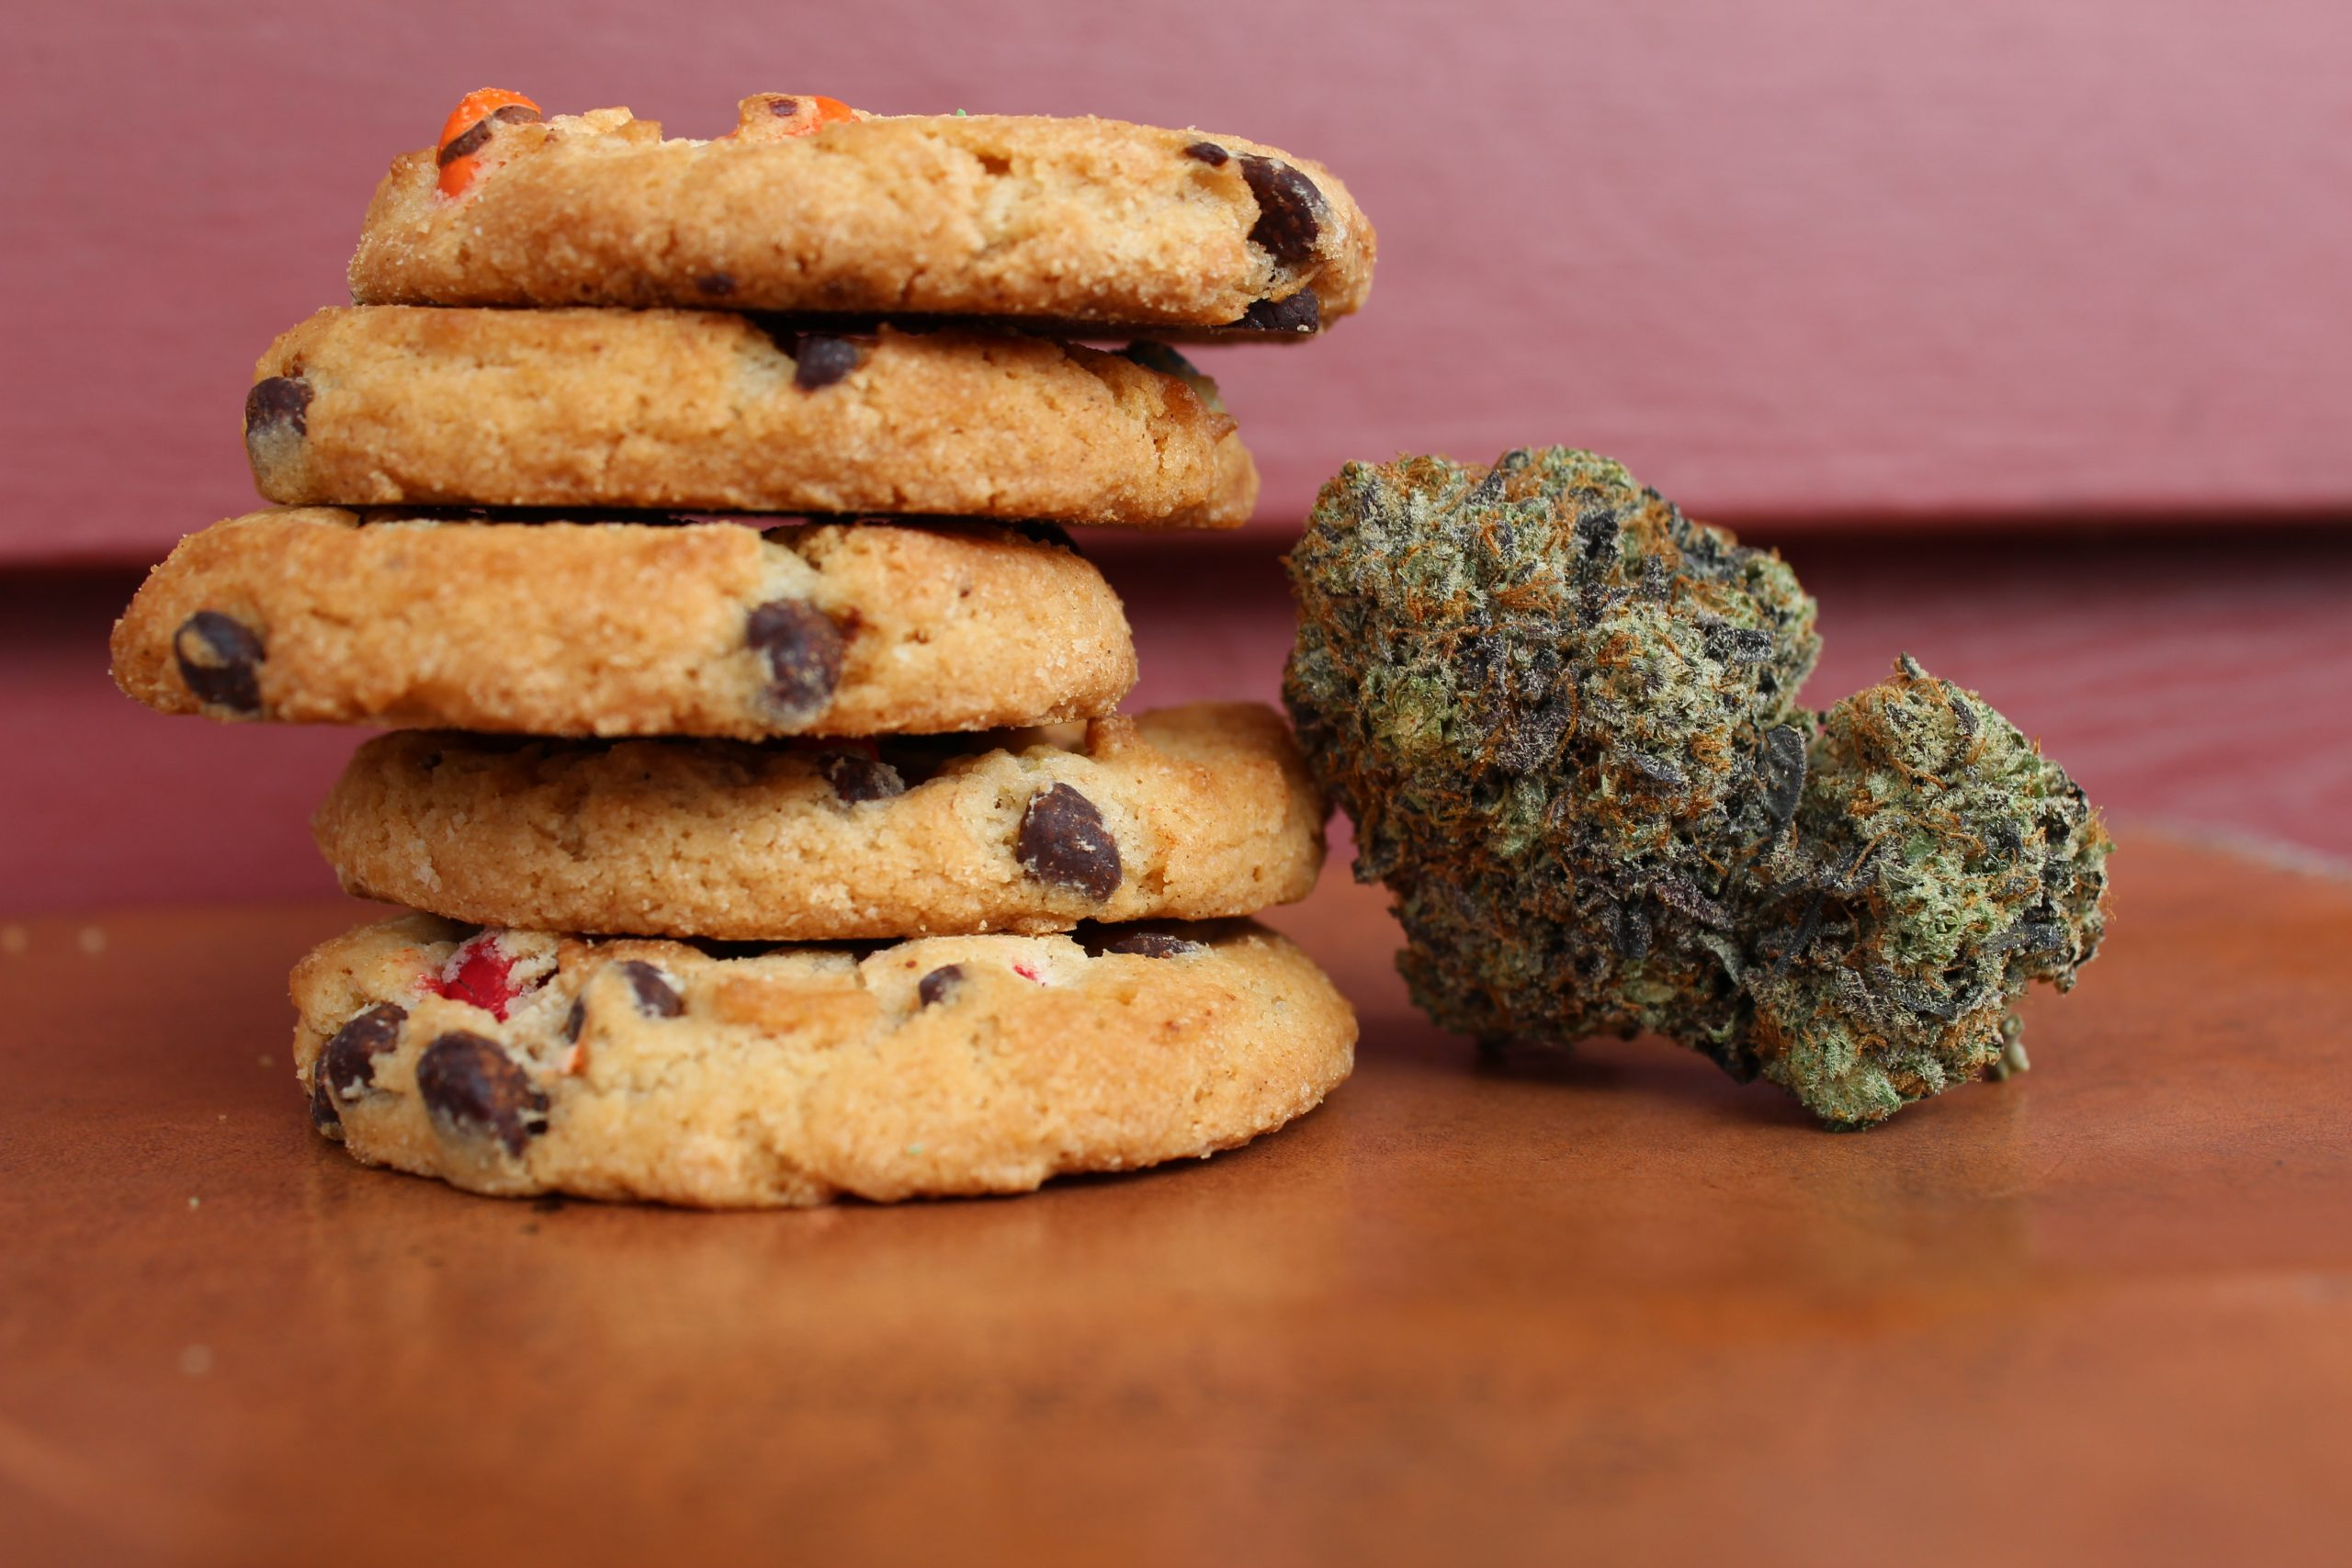 Recipe: How To Make Your Own Edibles At Home